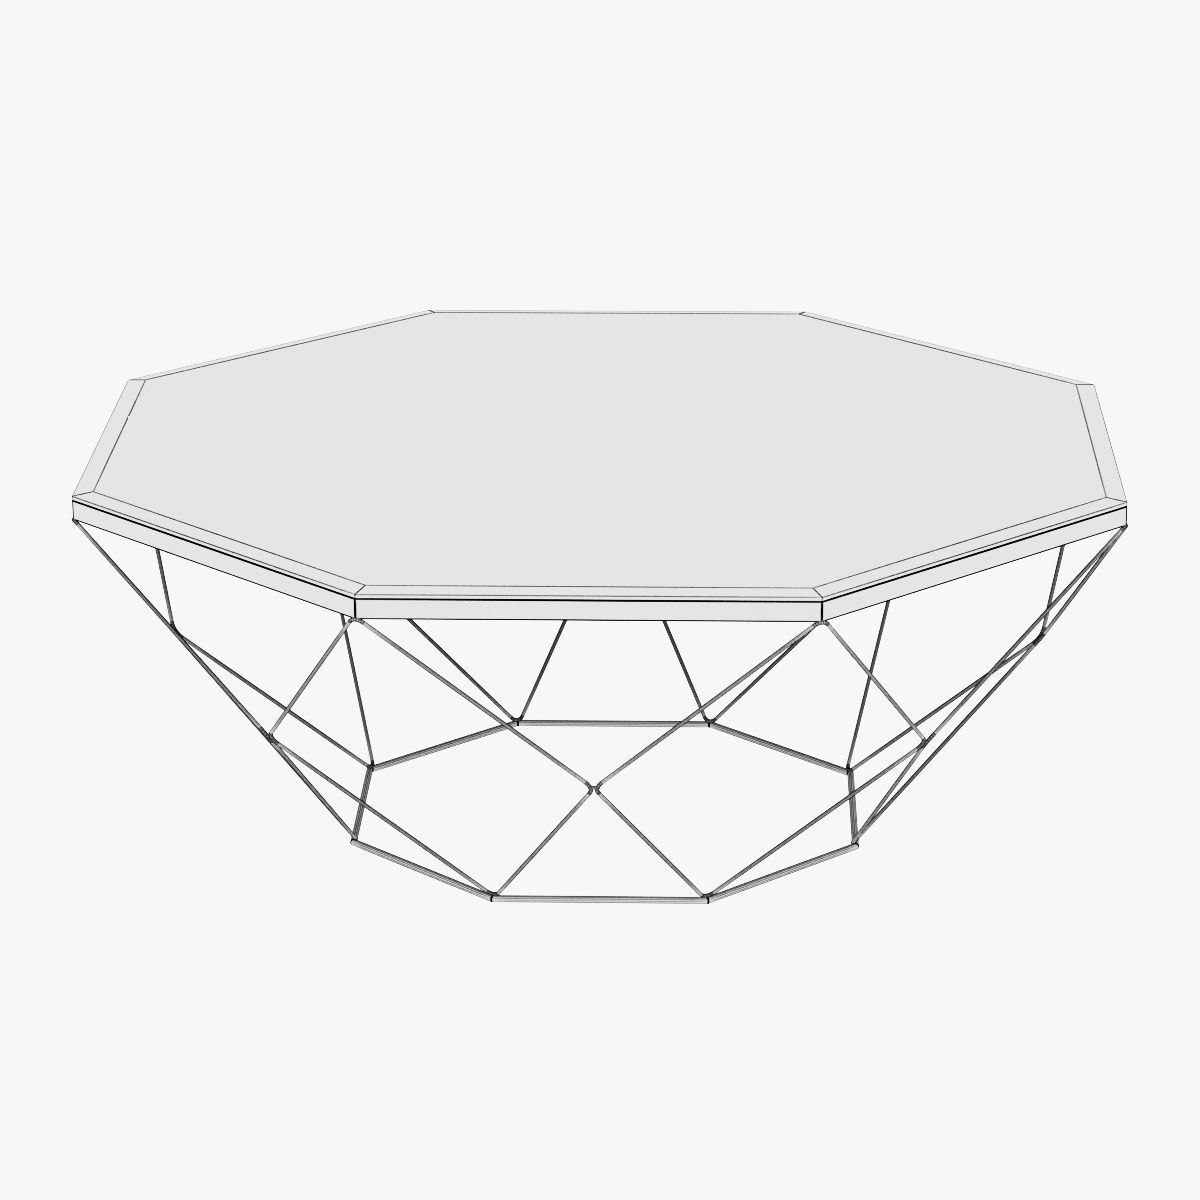 coffee table drawing. 1200x1200 Coffee Table Drawing And More On Tables Desk With Design Ideas A